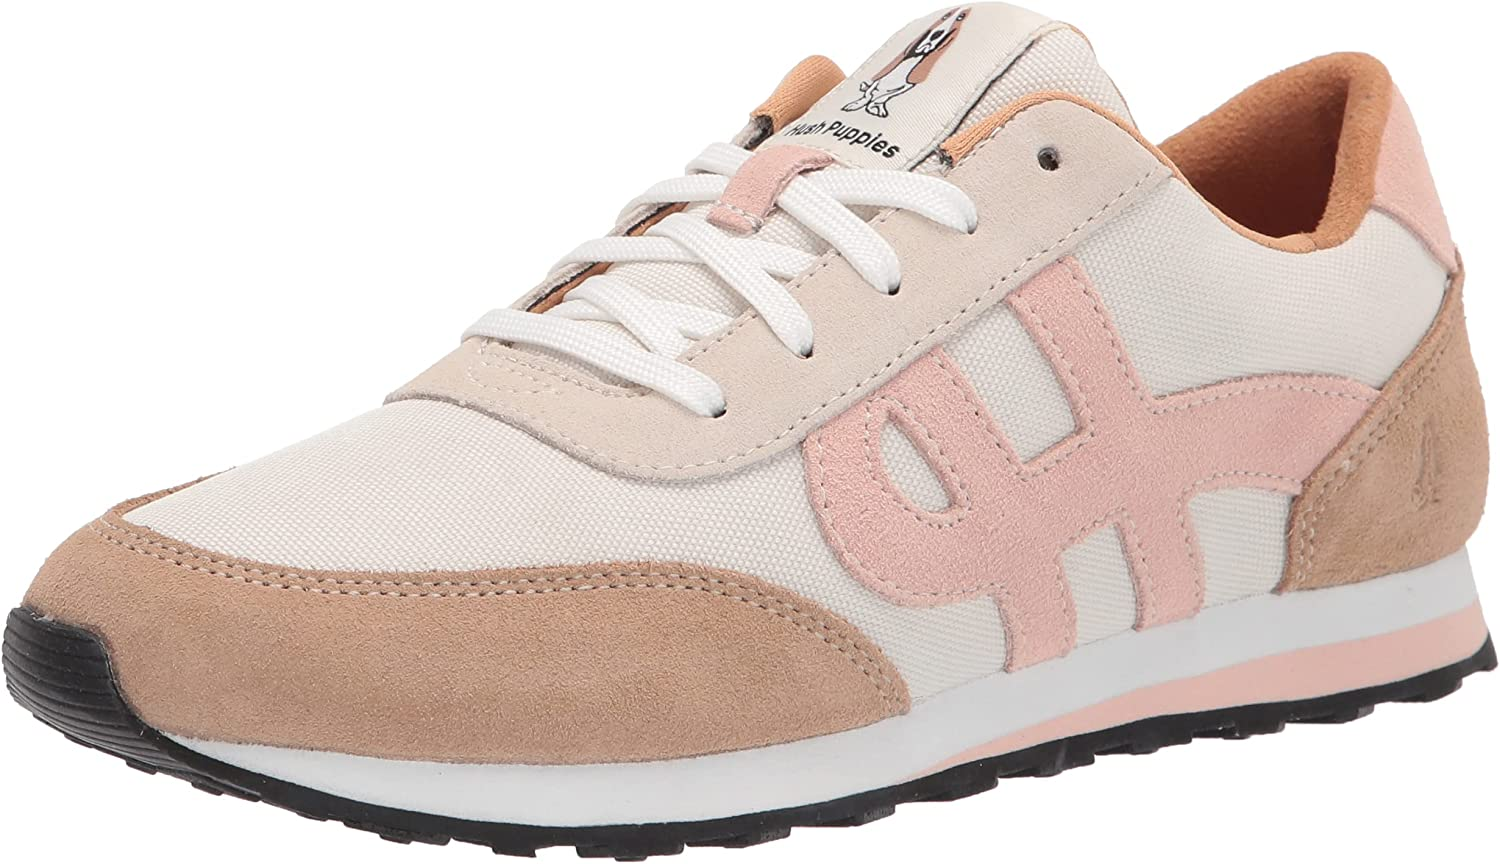 Hush Puppies Women's Seventy8 Max OFFicial 41% OFF Oxford